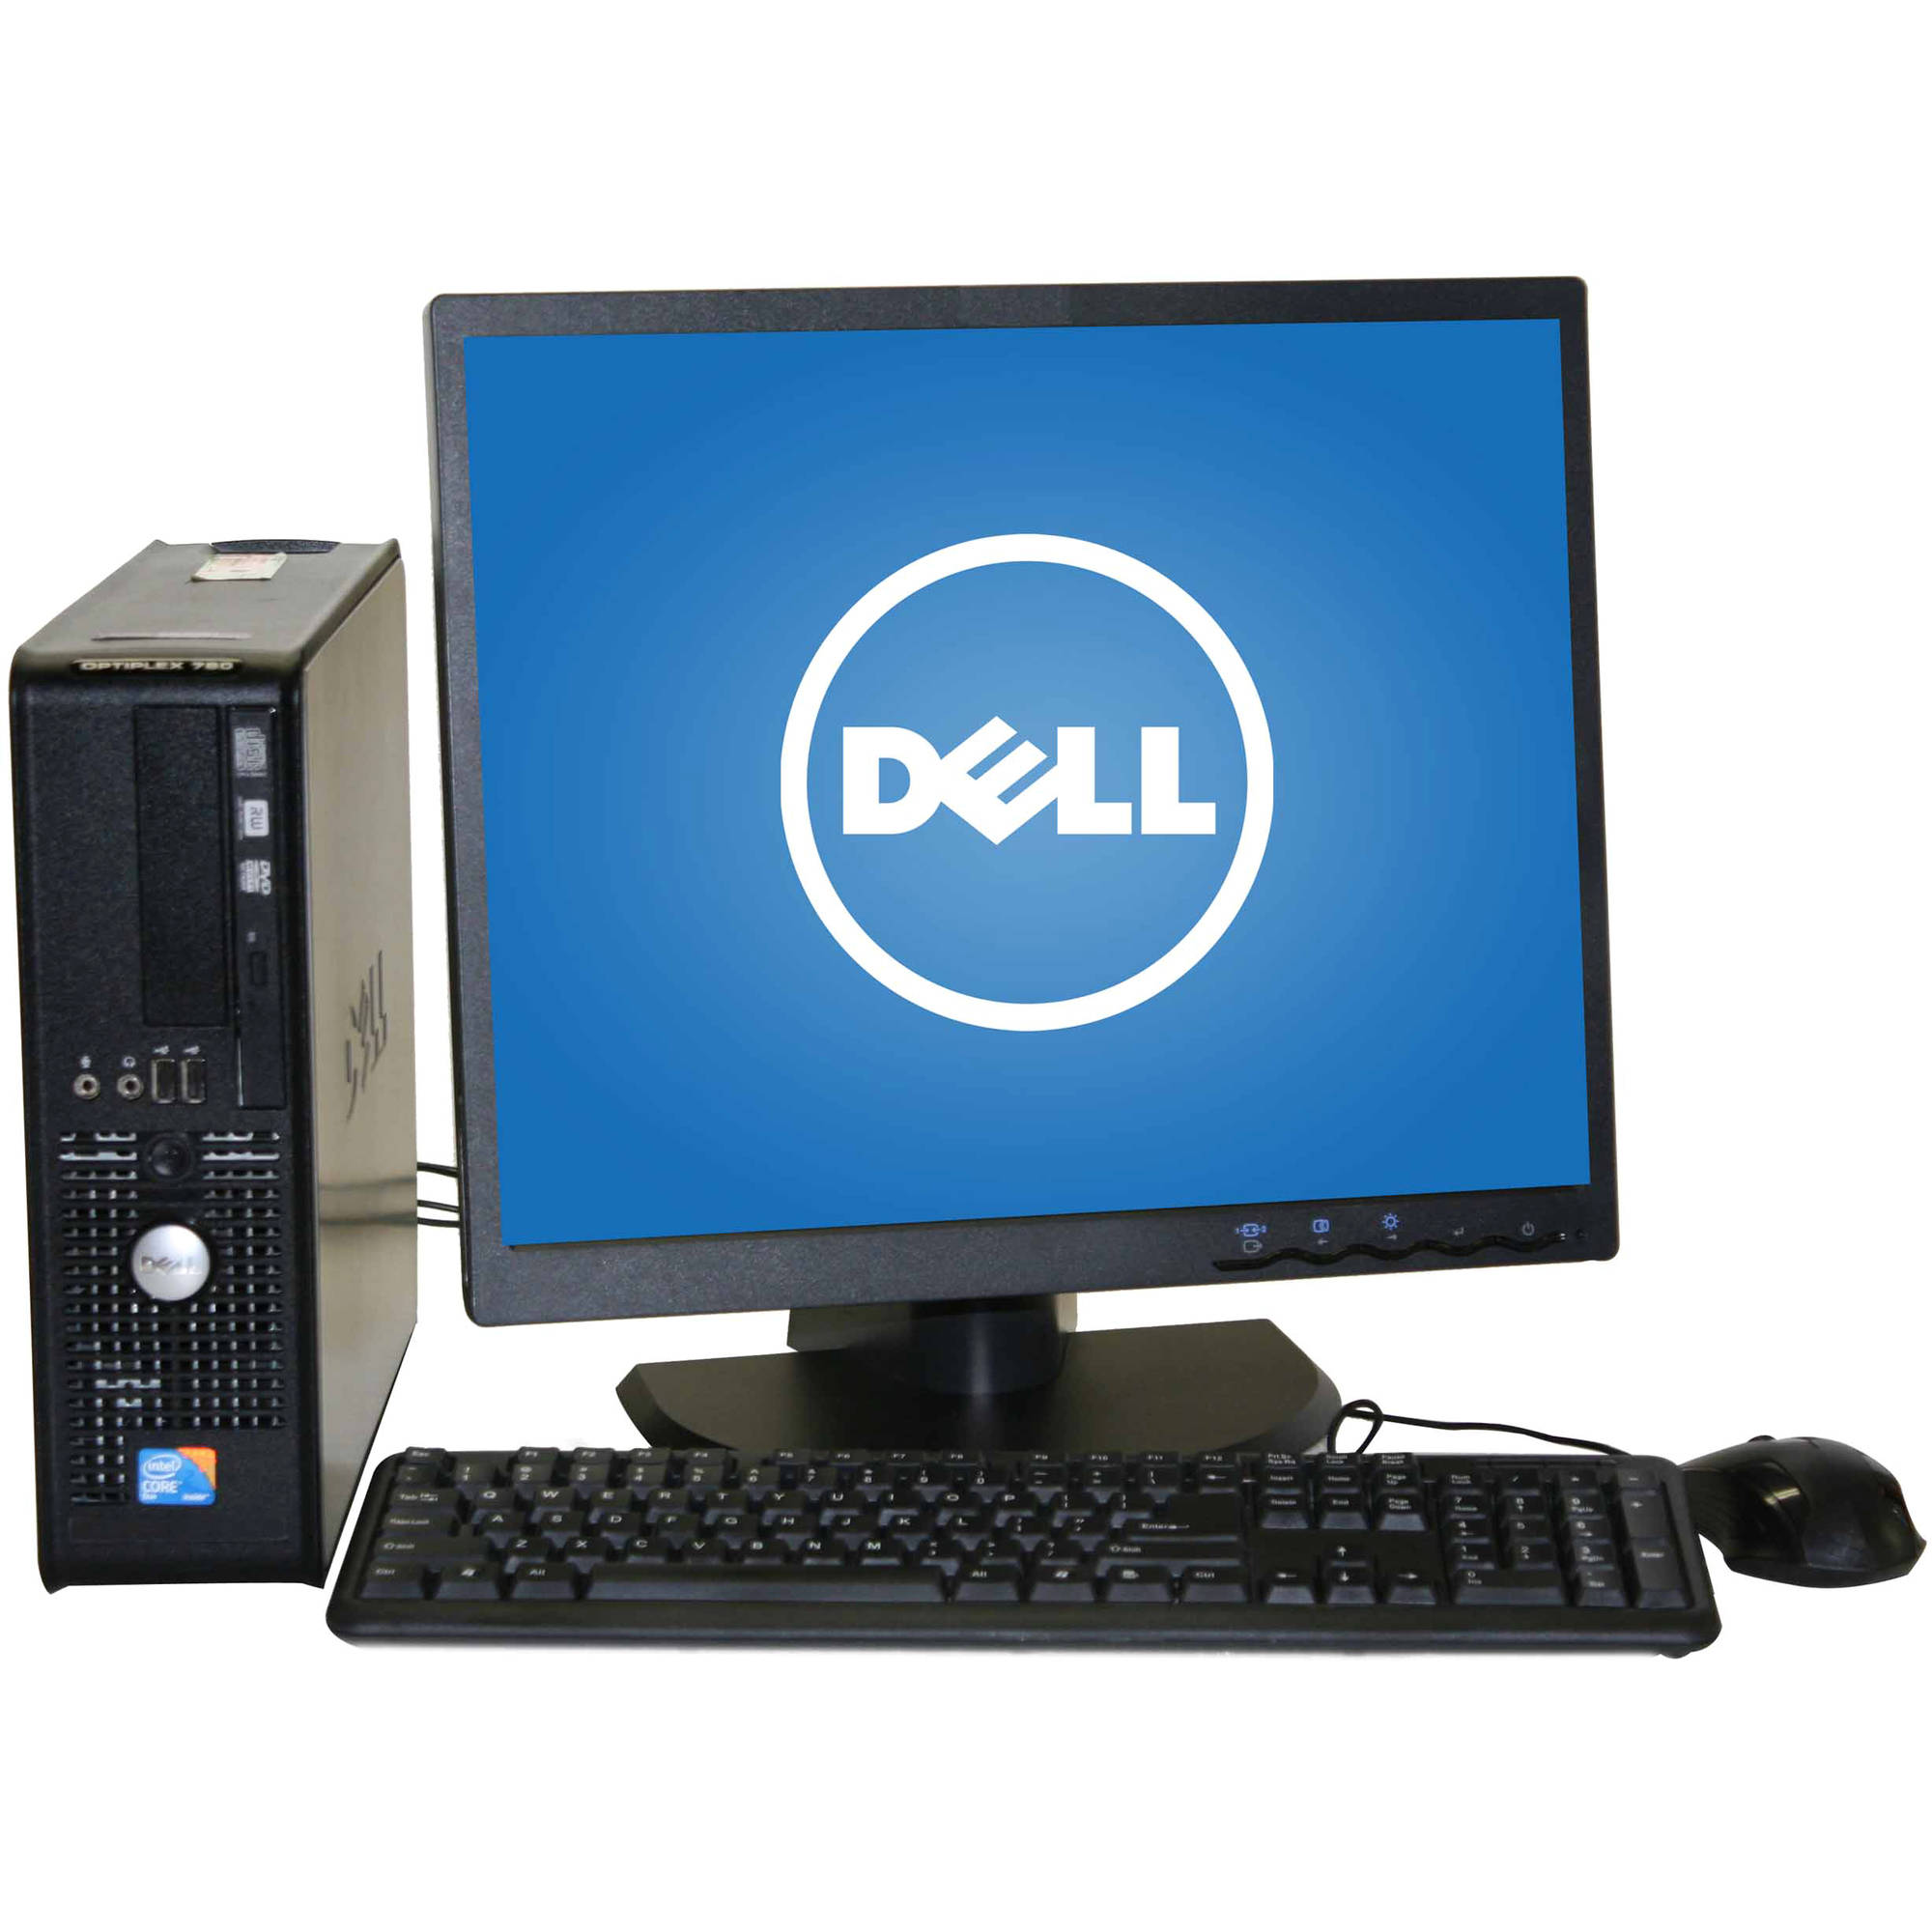 "Refurbished Dell 760 SFF Desktop PC with Intel Core 2 Duo E7500 Processor 4GB Memory, 19"" LCD Monitor, 80GB Hard Drive and Windows 10 Home"